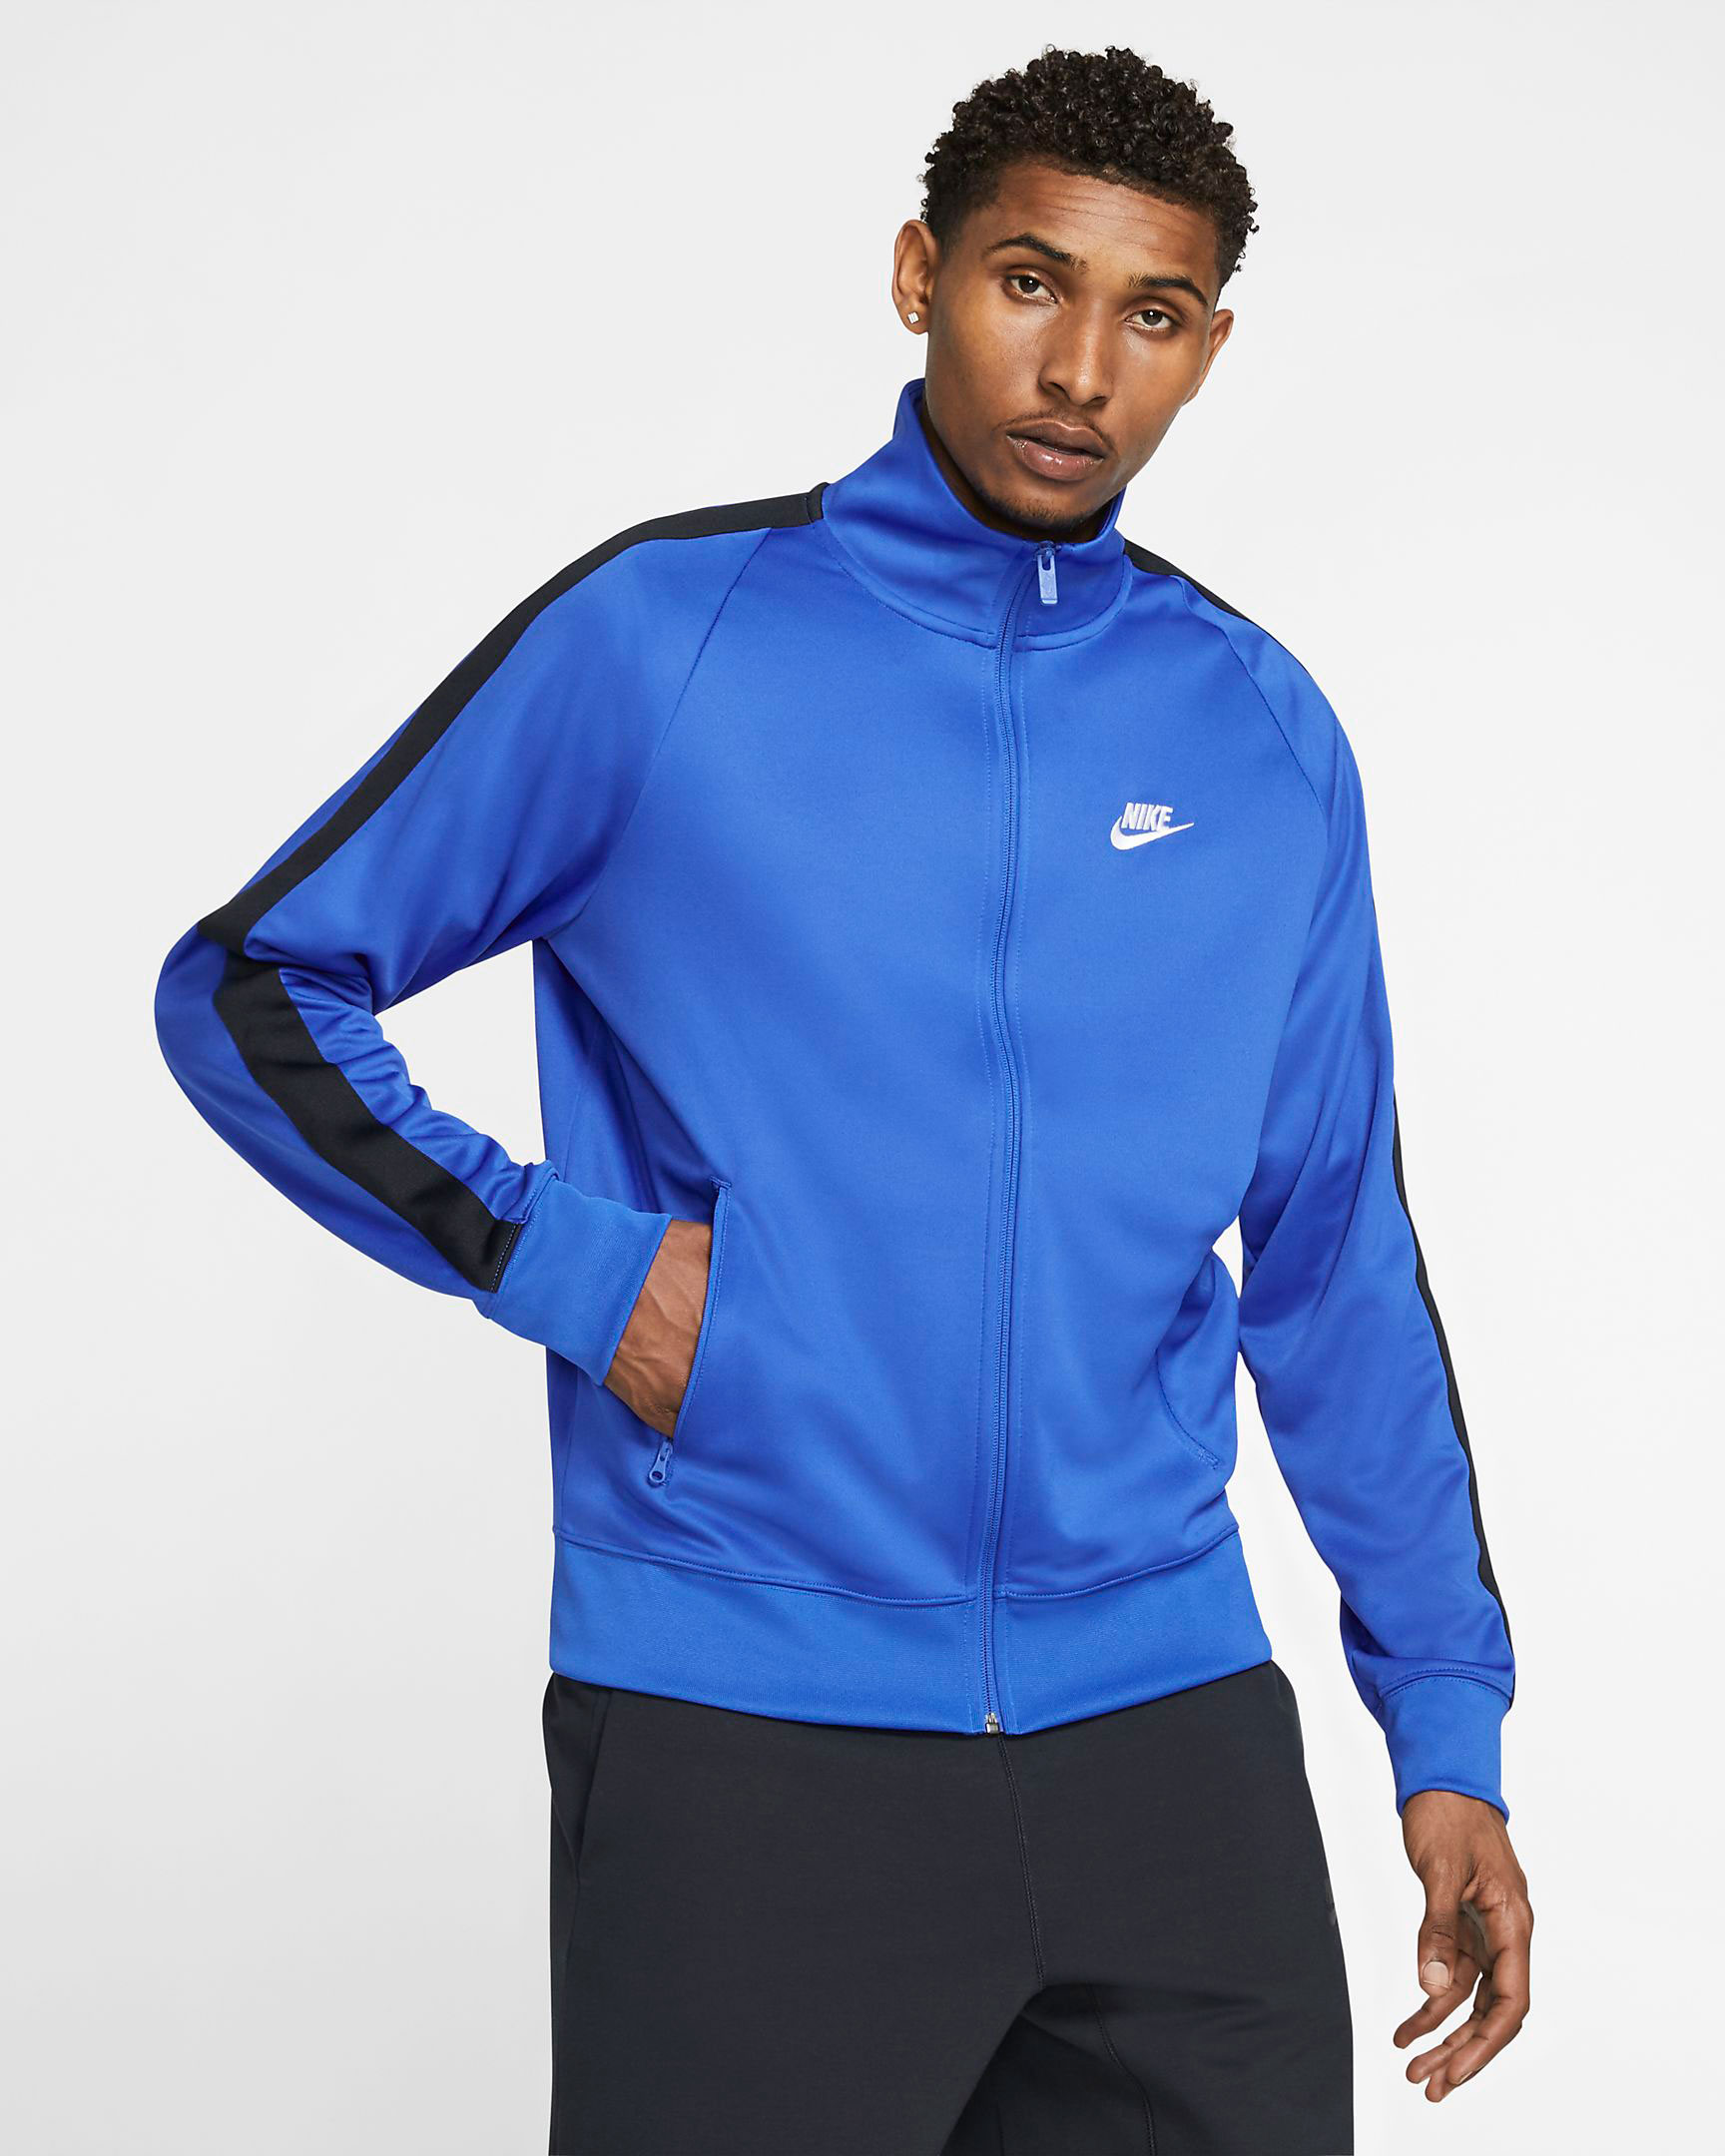 jordan-14-hyper-royal-blue-nike-track-jacket-match-2